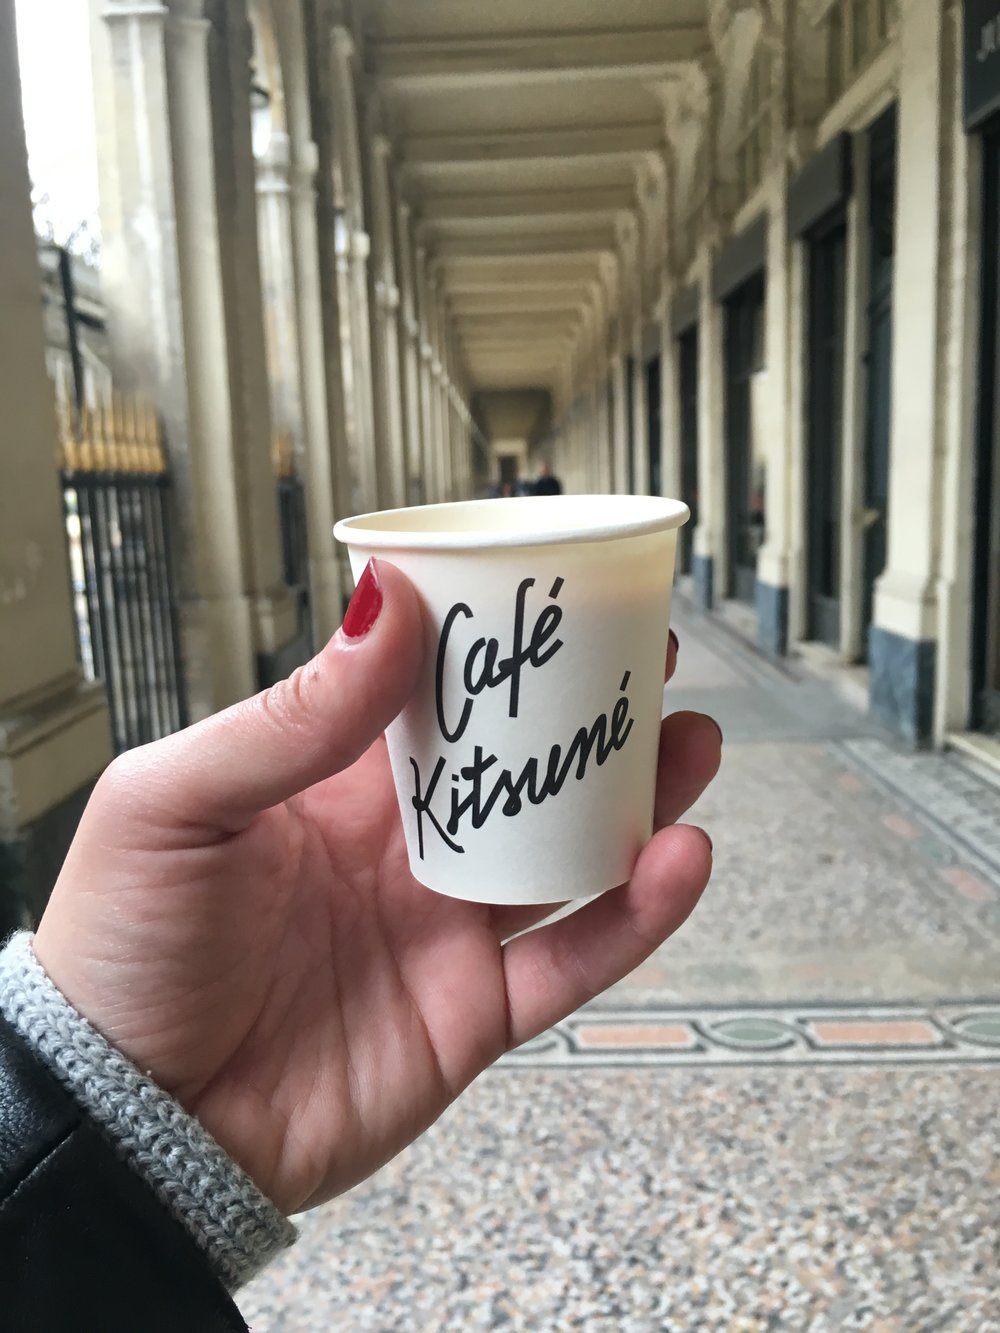 Cafe Kitsune in Palais Royal